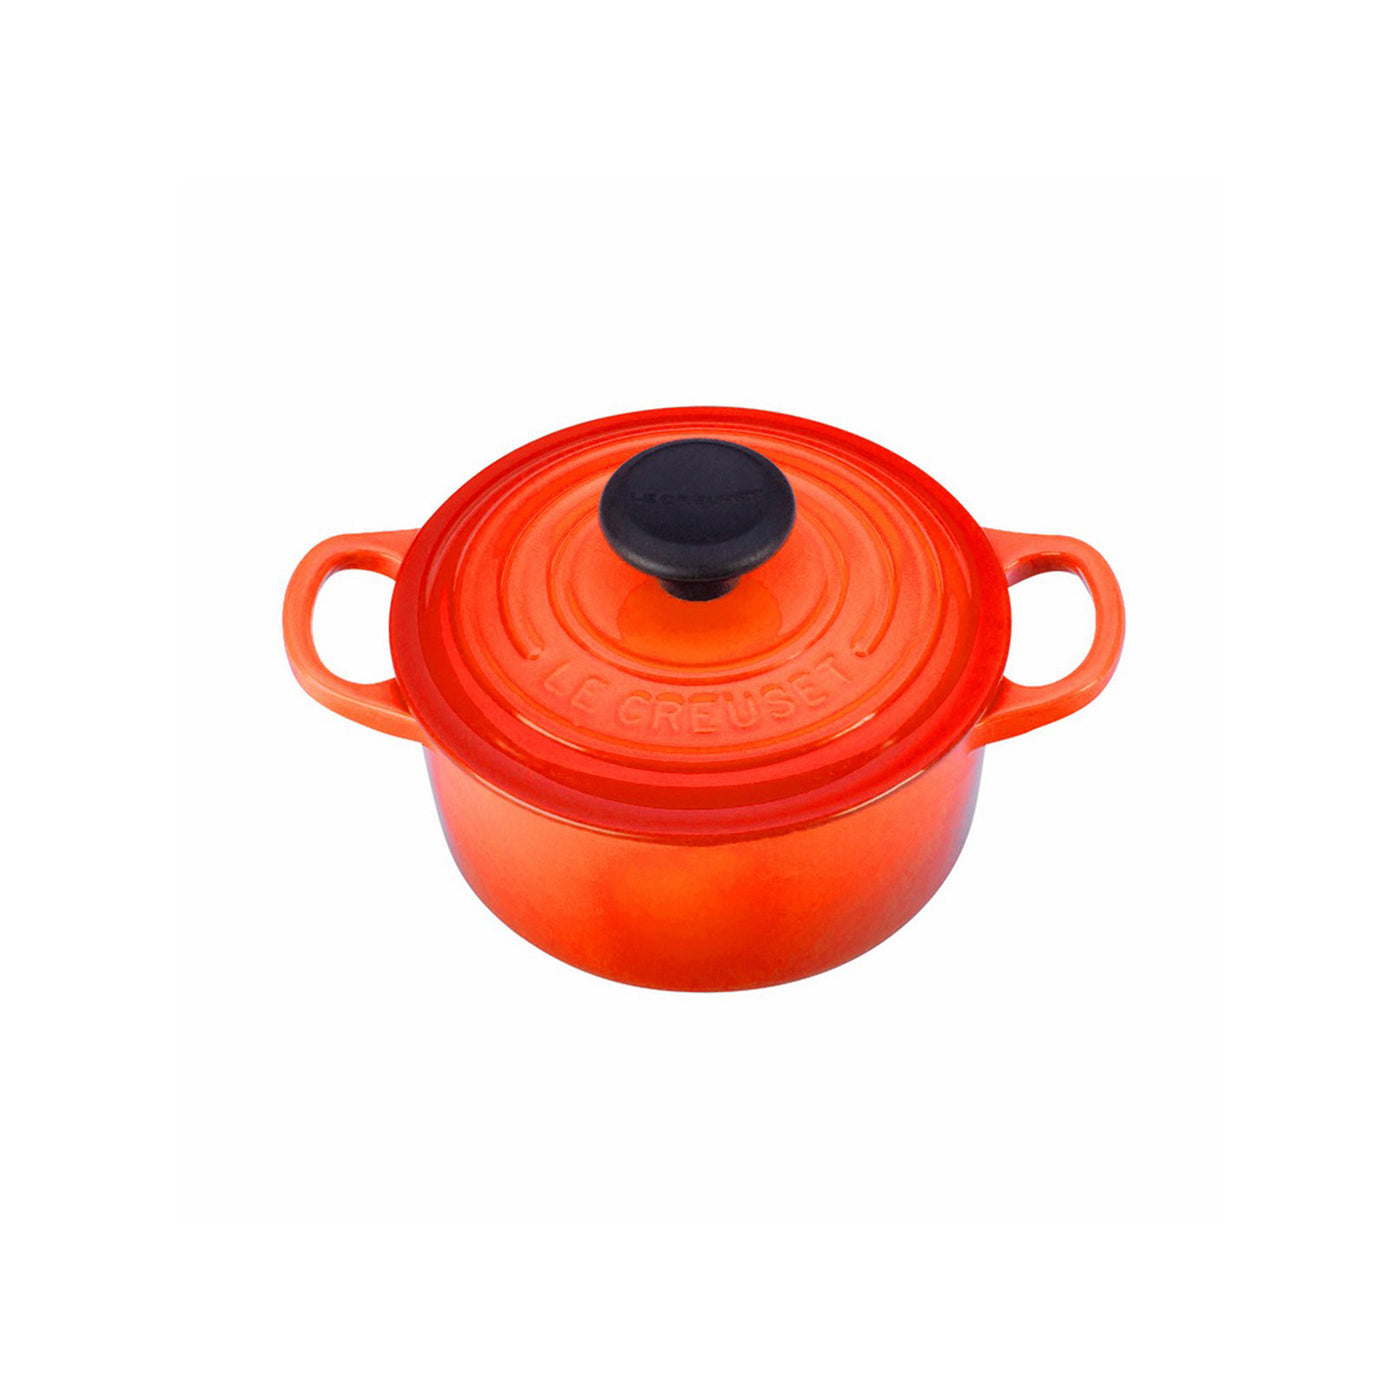 Le Creuset 1 Qt. Signature Round French Oven - Flame